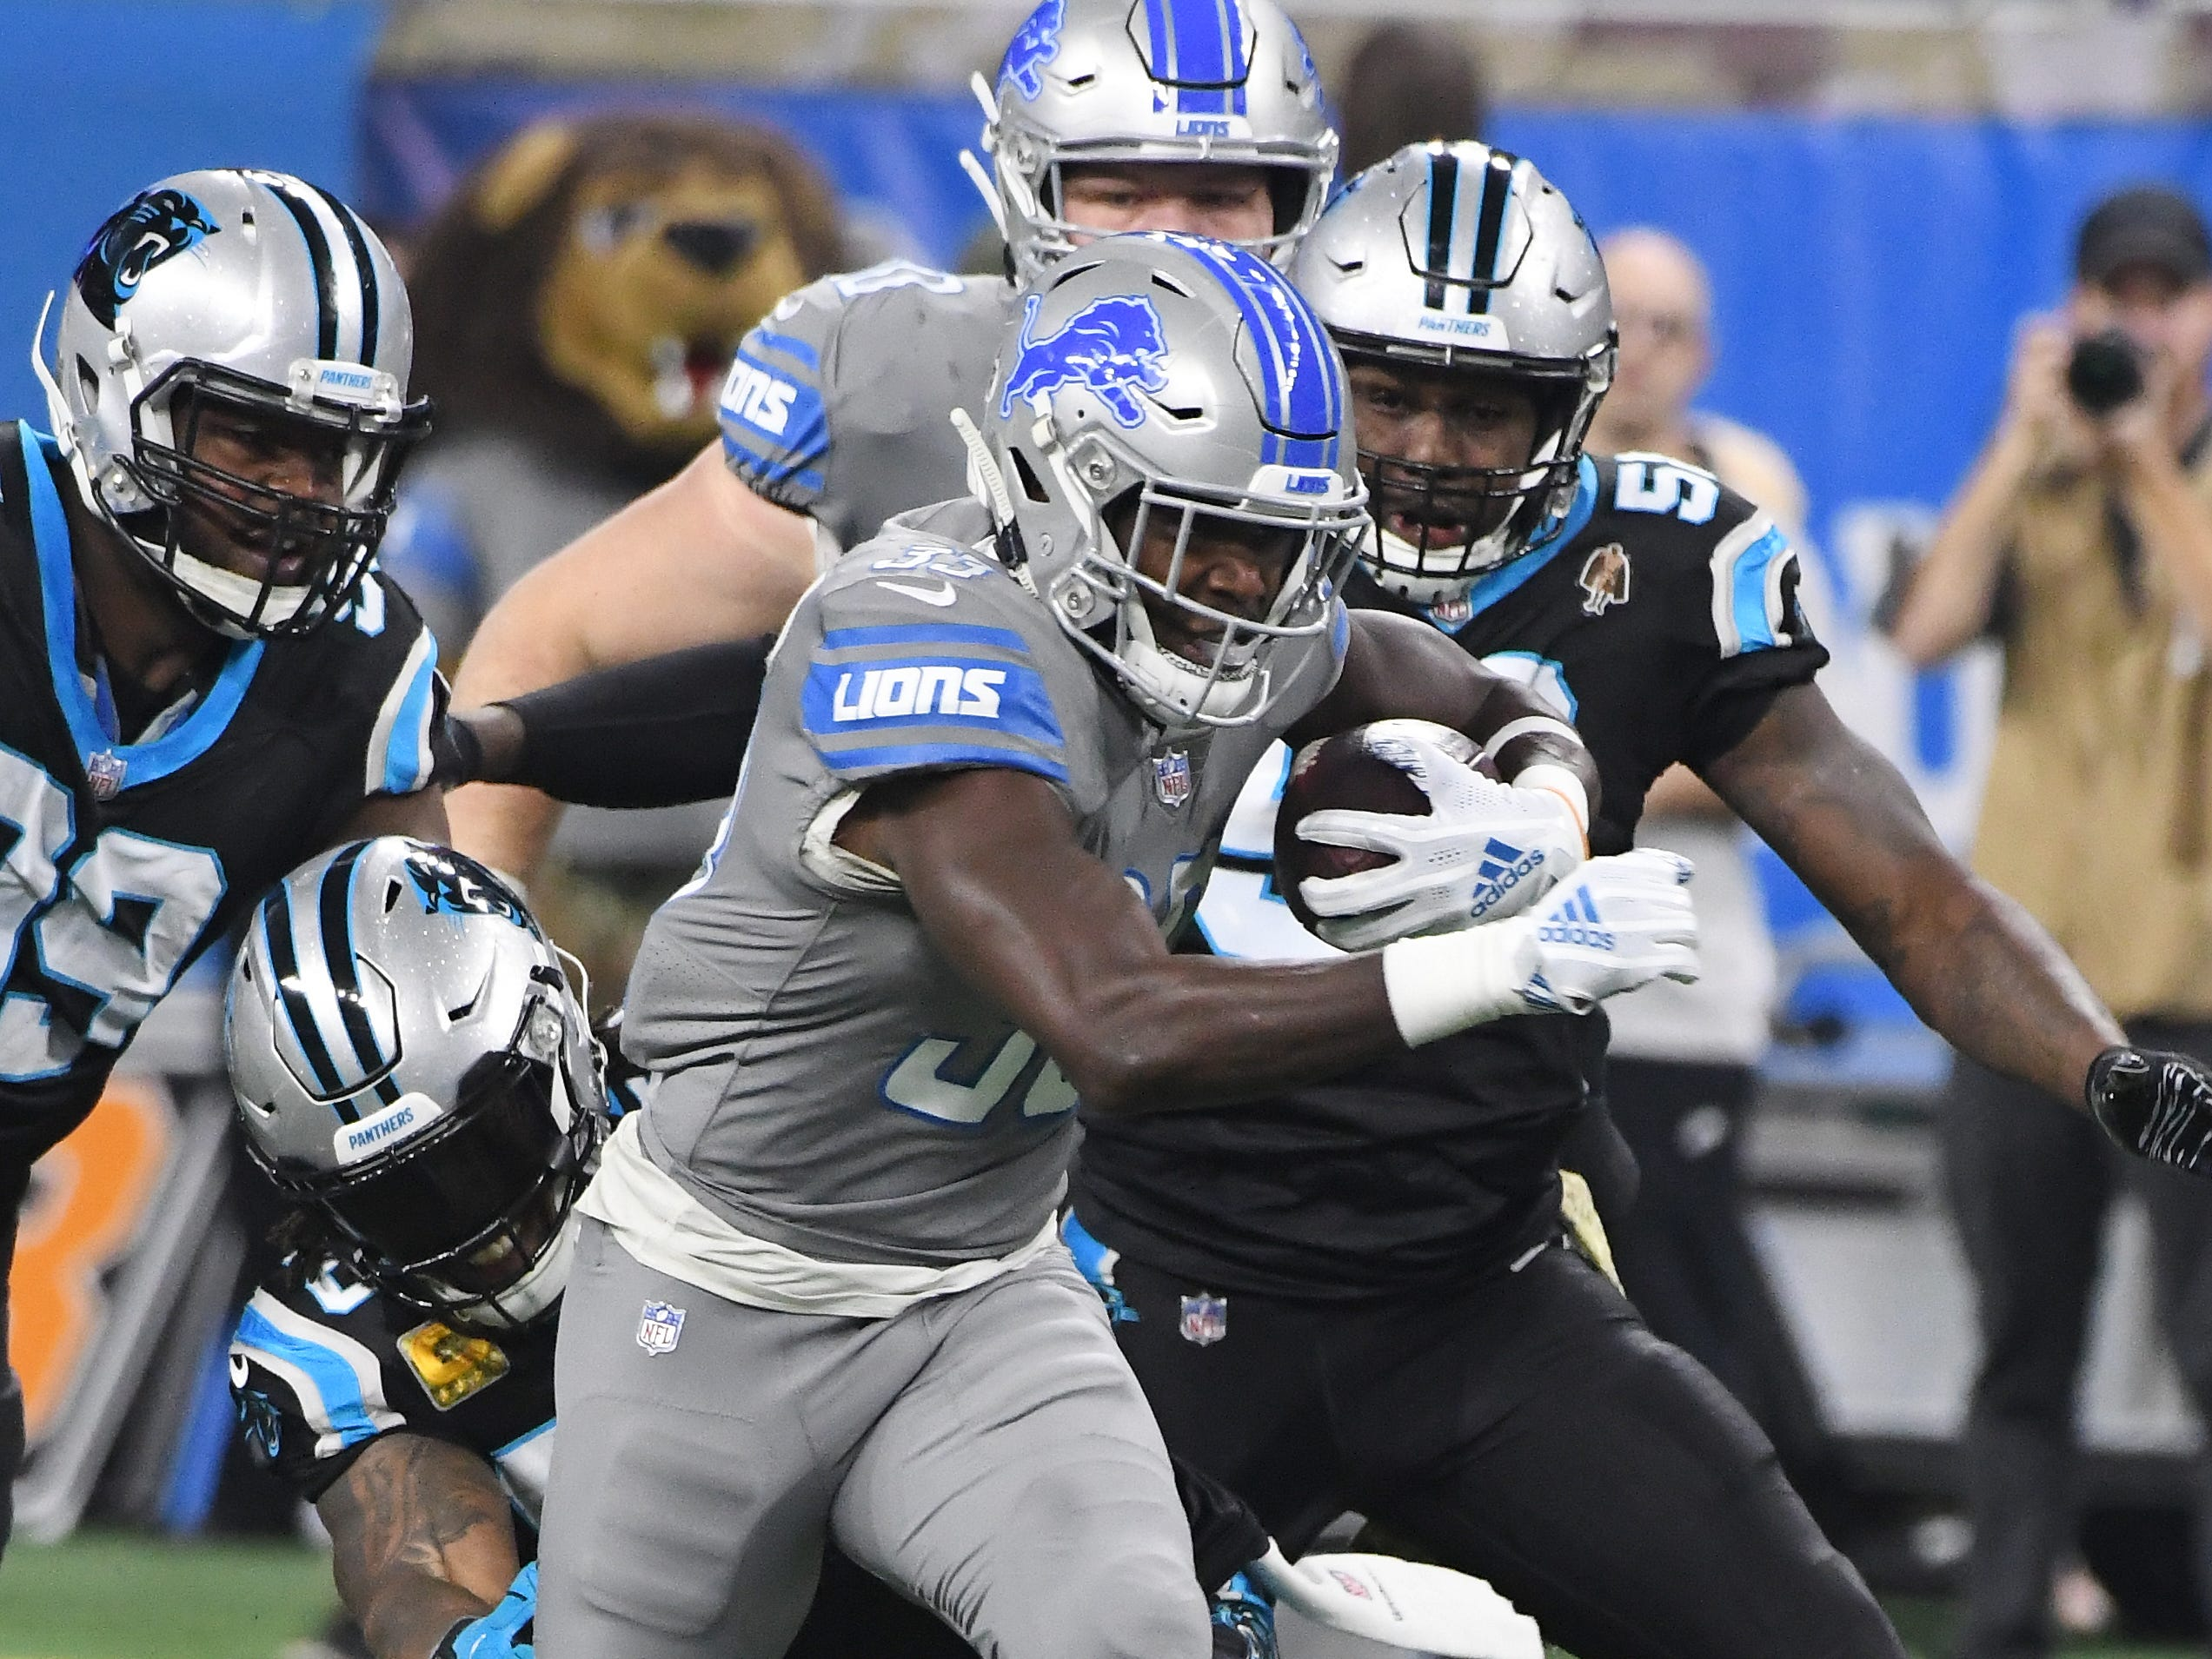 Lions running back Kerryon Johnson races up field in the first quarter.